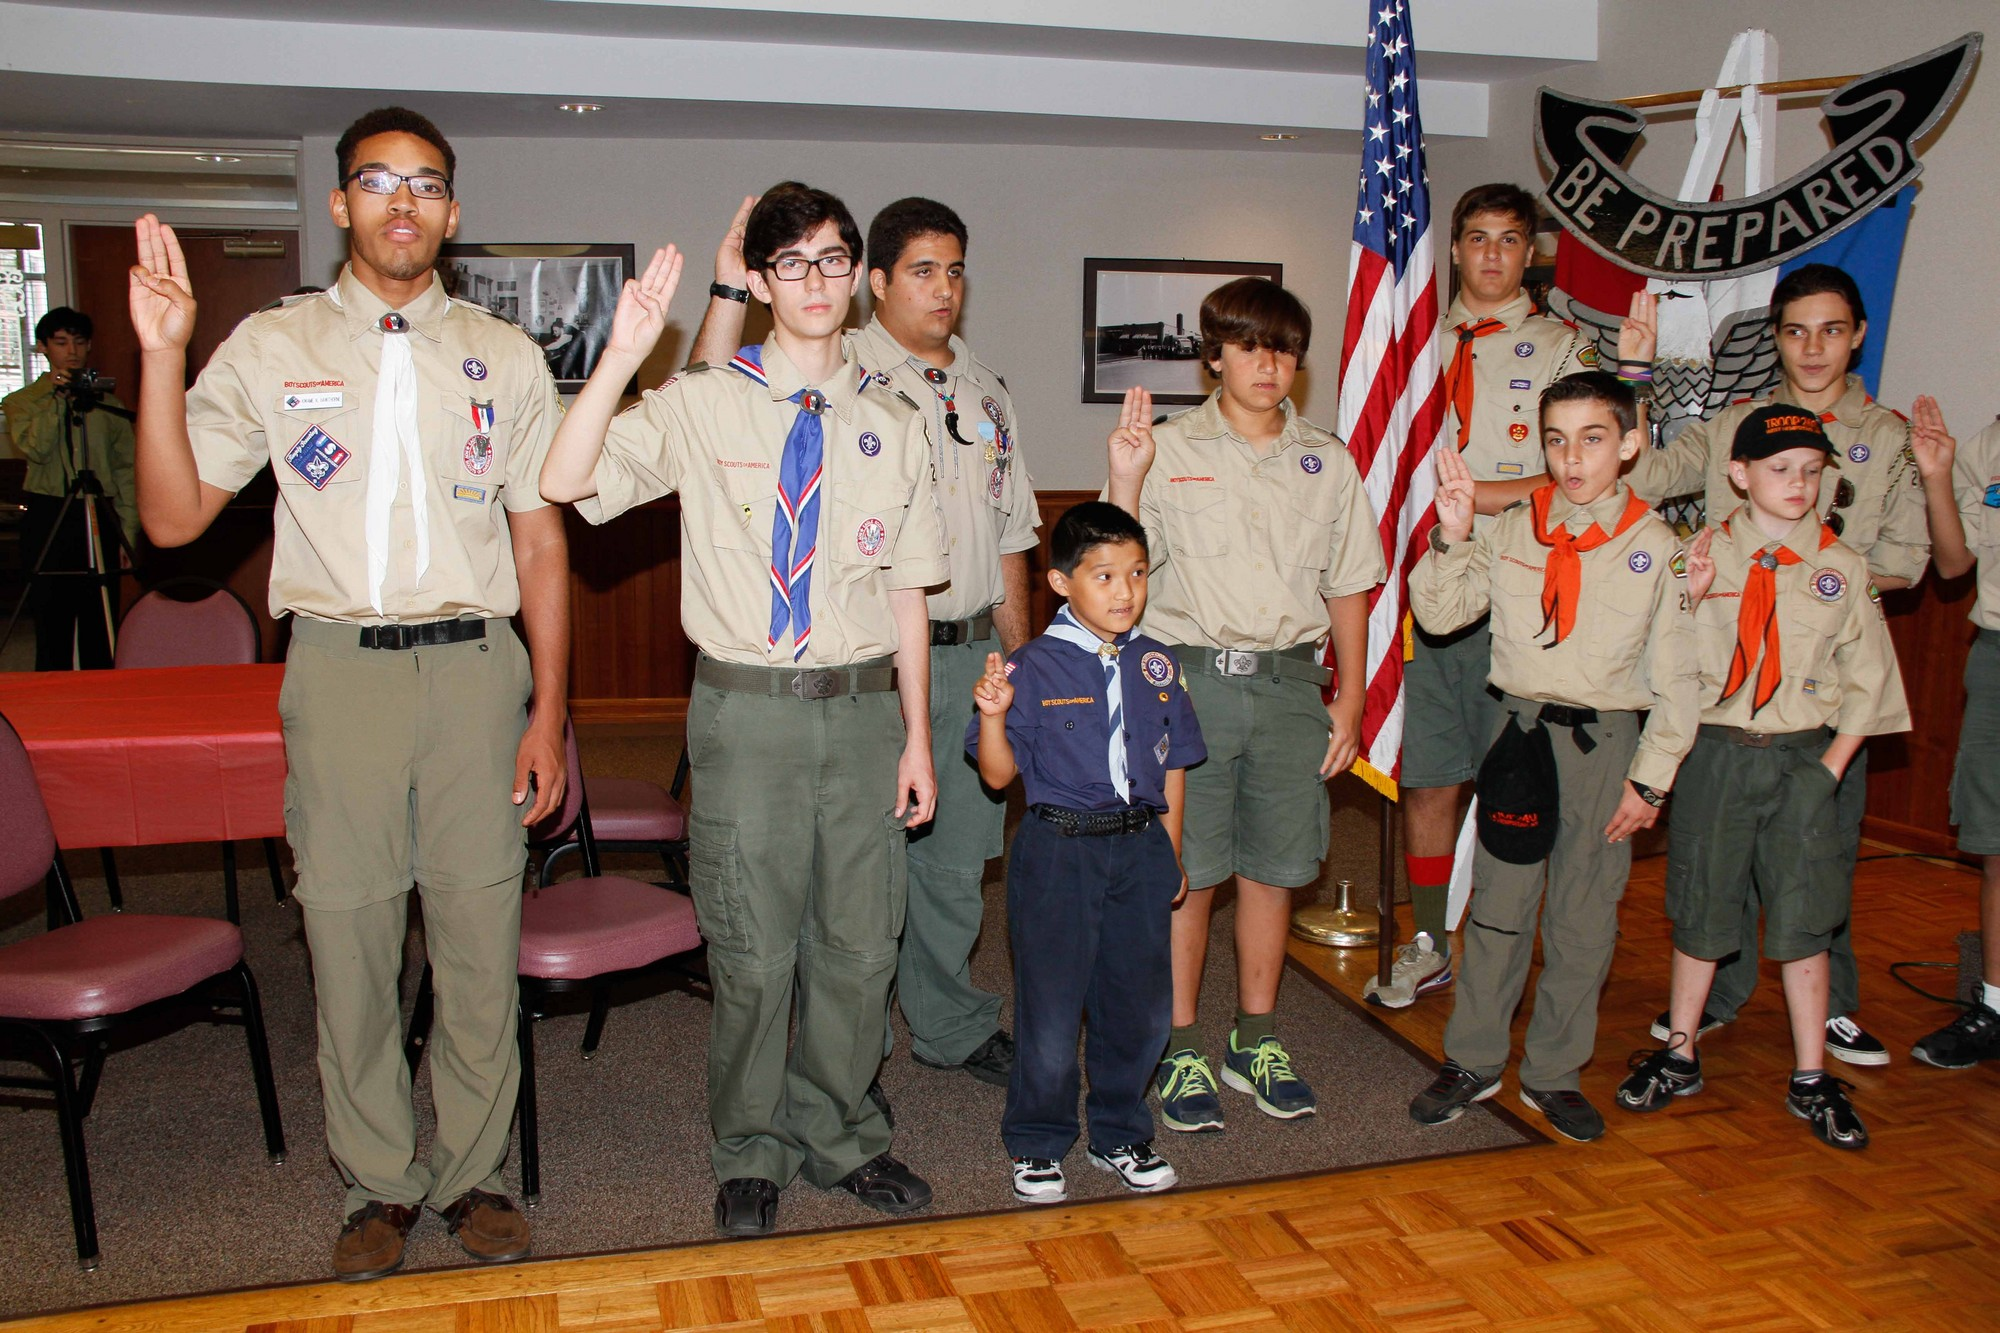 Hesselbach recites the Scout Oath alongside fellow Eagle Scouts from Troop 240.